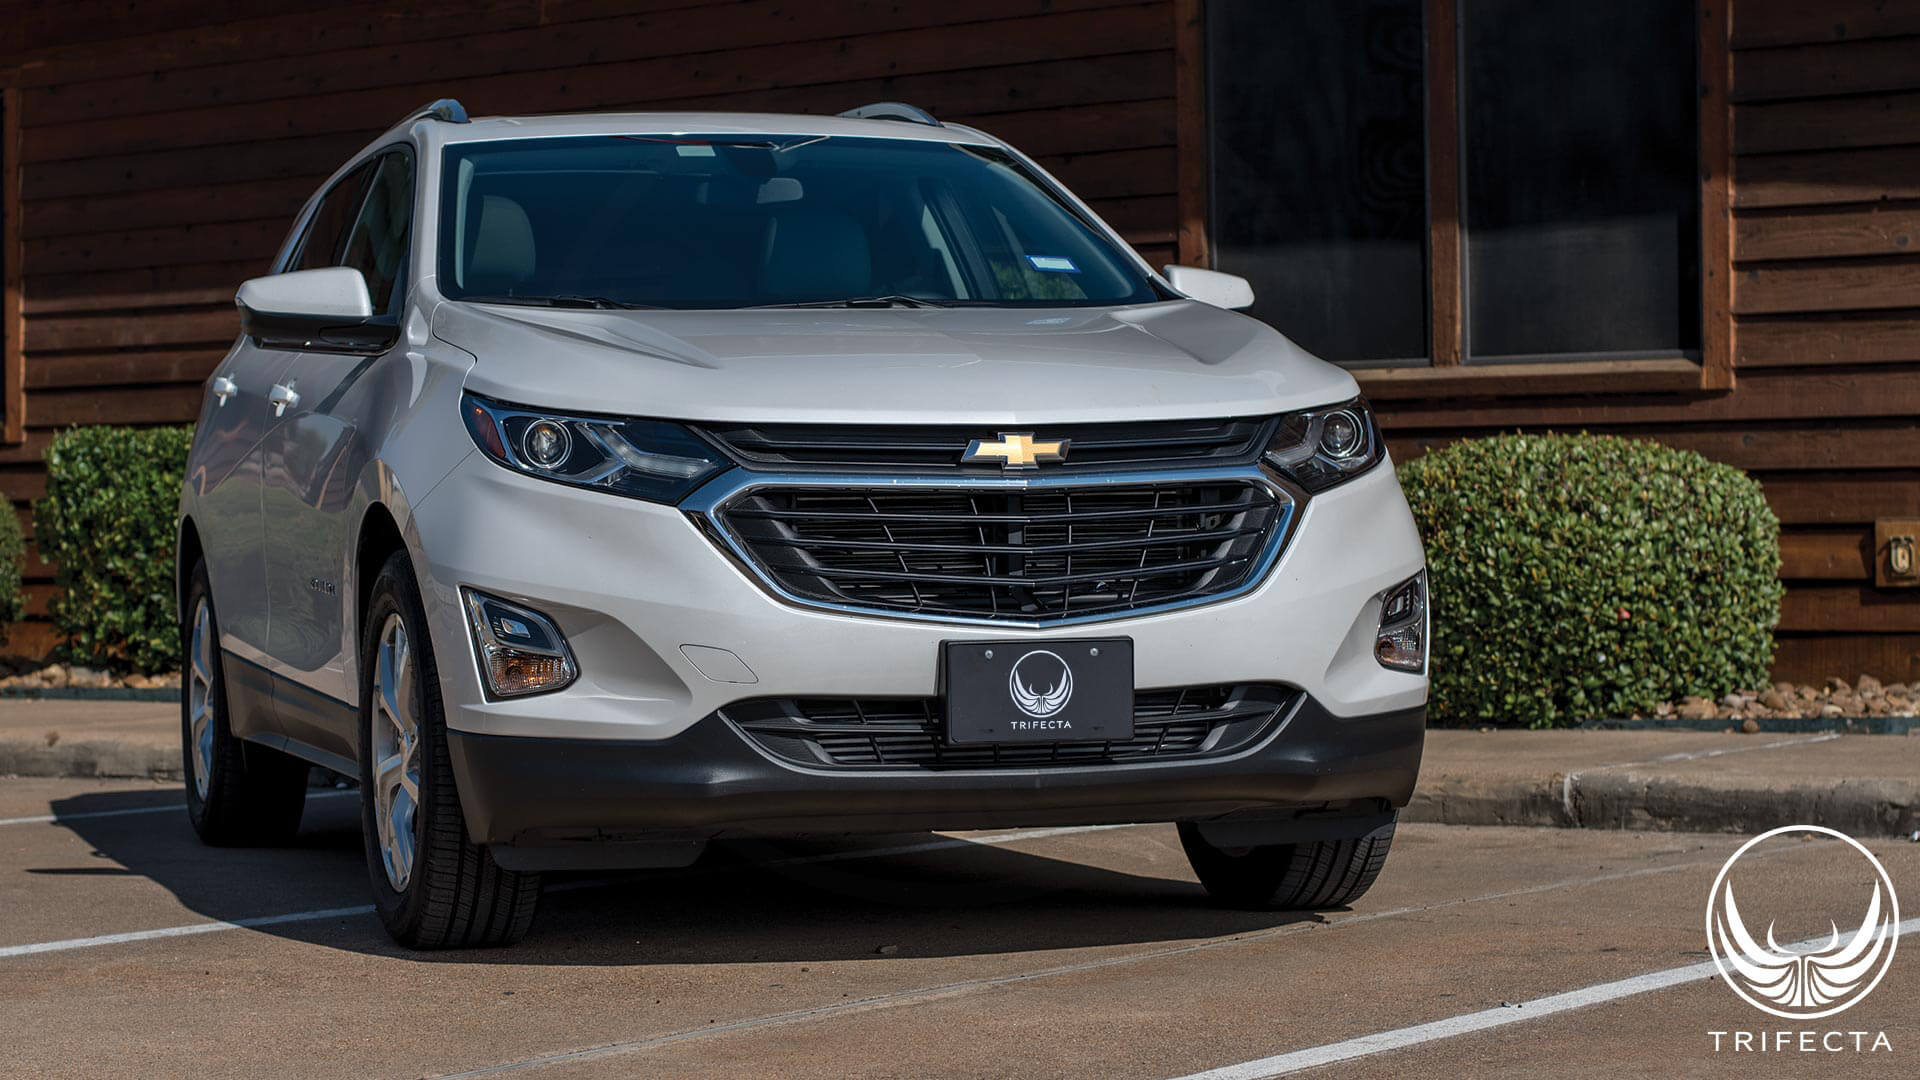 Product Review: 2018+ Chevrolet Equinox - 2.0L Turbo - Advantage